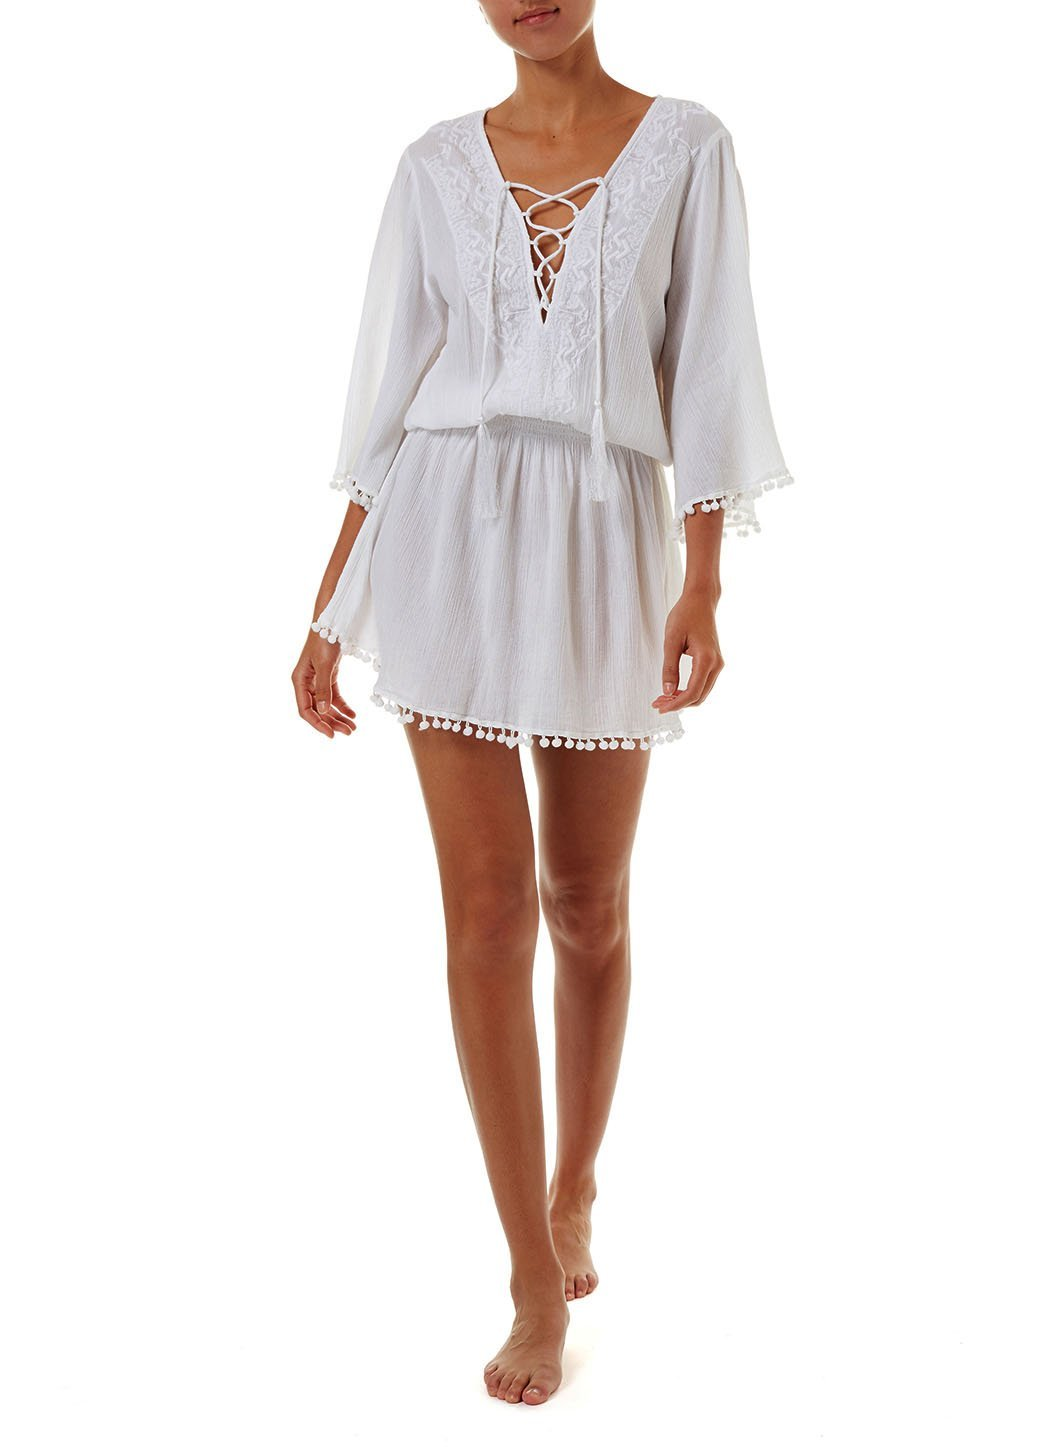 kiah white laceup embroidered short dress 2019 F